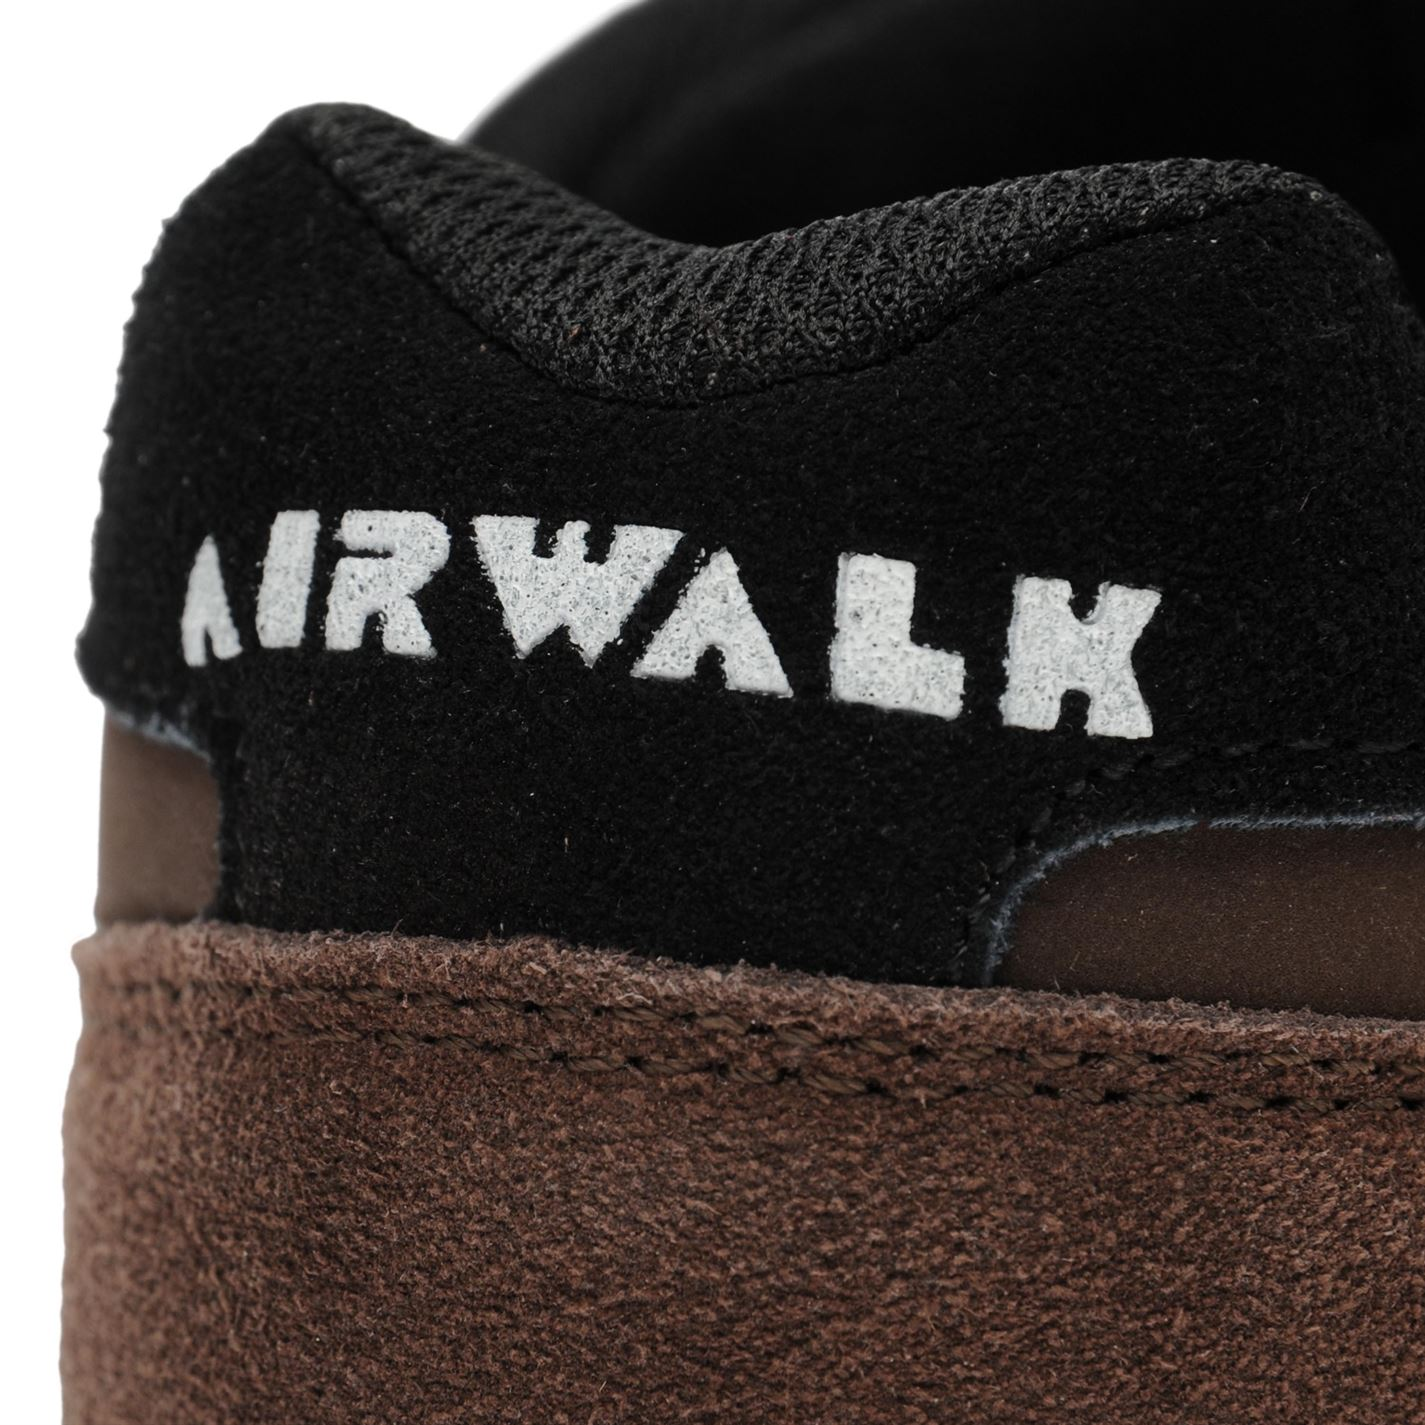 Airwalk-Mens-Brock-Skate-Shoes-Lace-Up-Suede-Accents-Sport-Casual-Trainers thumbnail 20